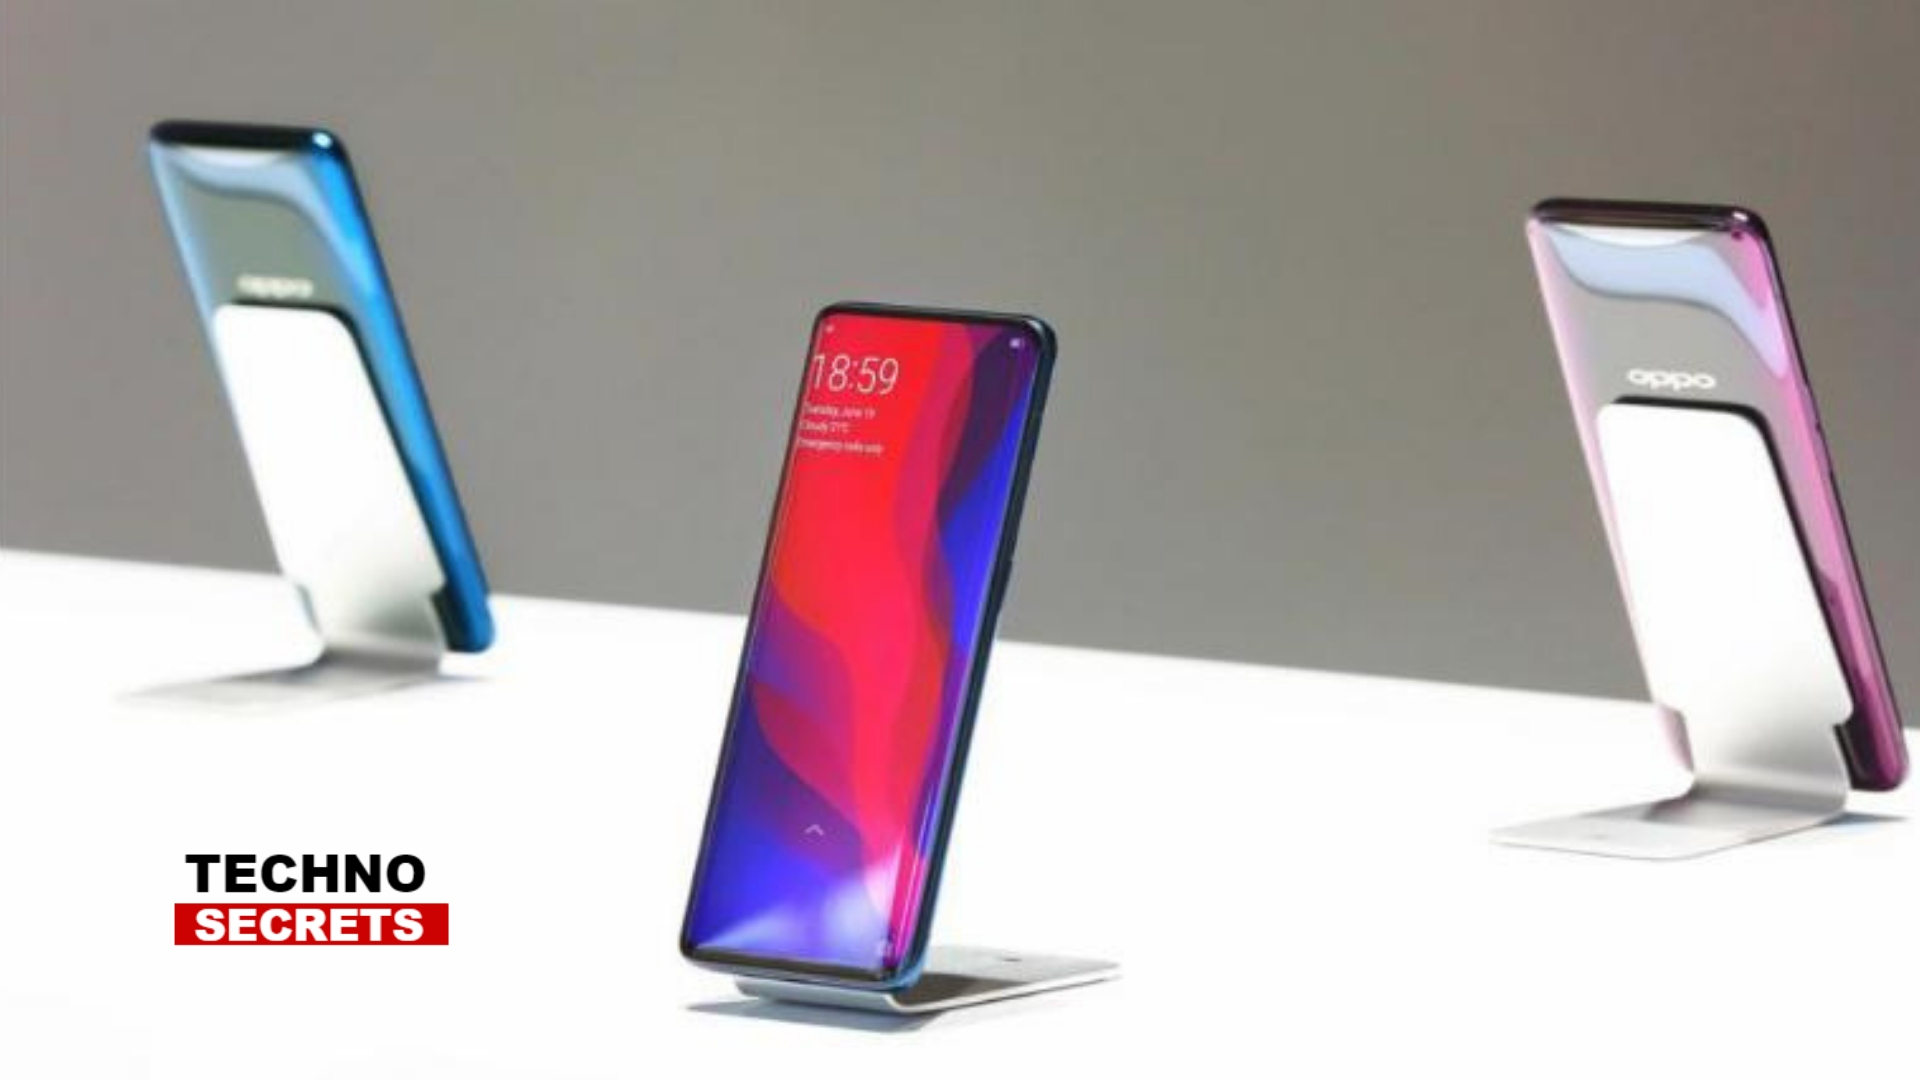 Oppo's Foldable Smartphone To Arrive At MWC Next Year